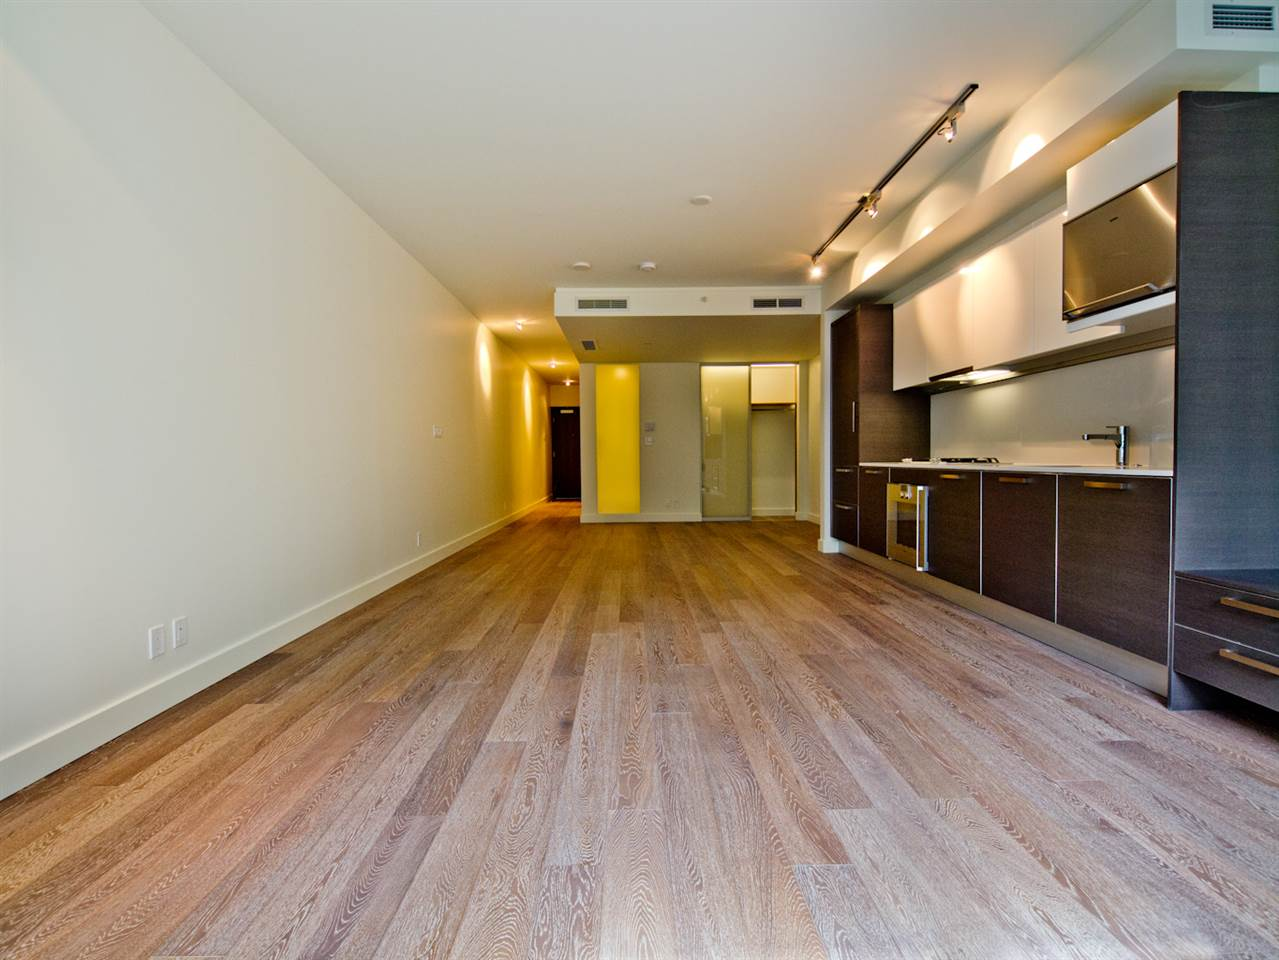 Main Photo: 301 1477 W PENDER STREET in Vancouver: Coal Harbour Condo for sale (Vancouver West)  : MLS(r) # R2038691